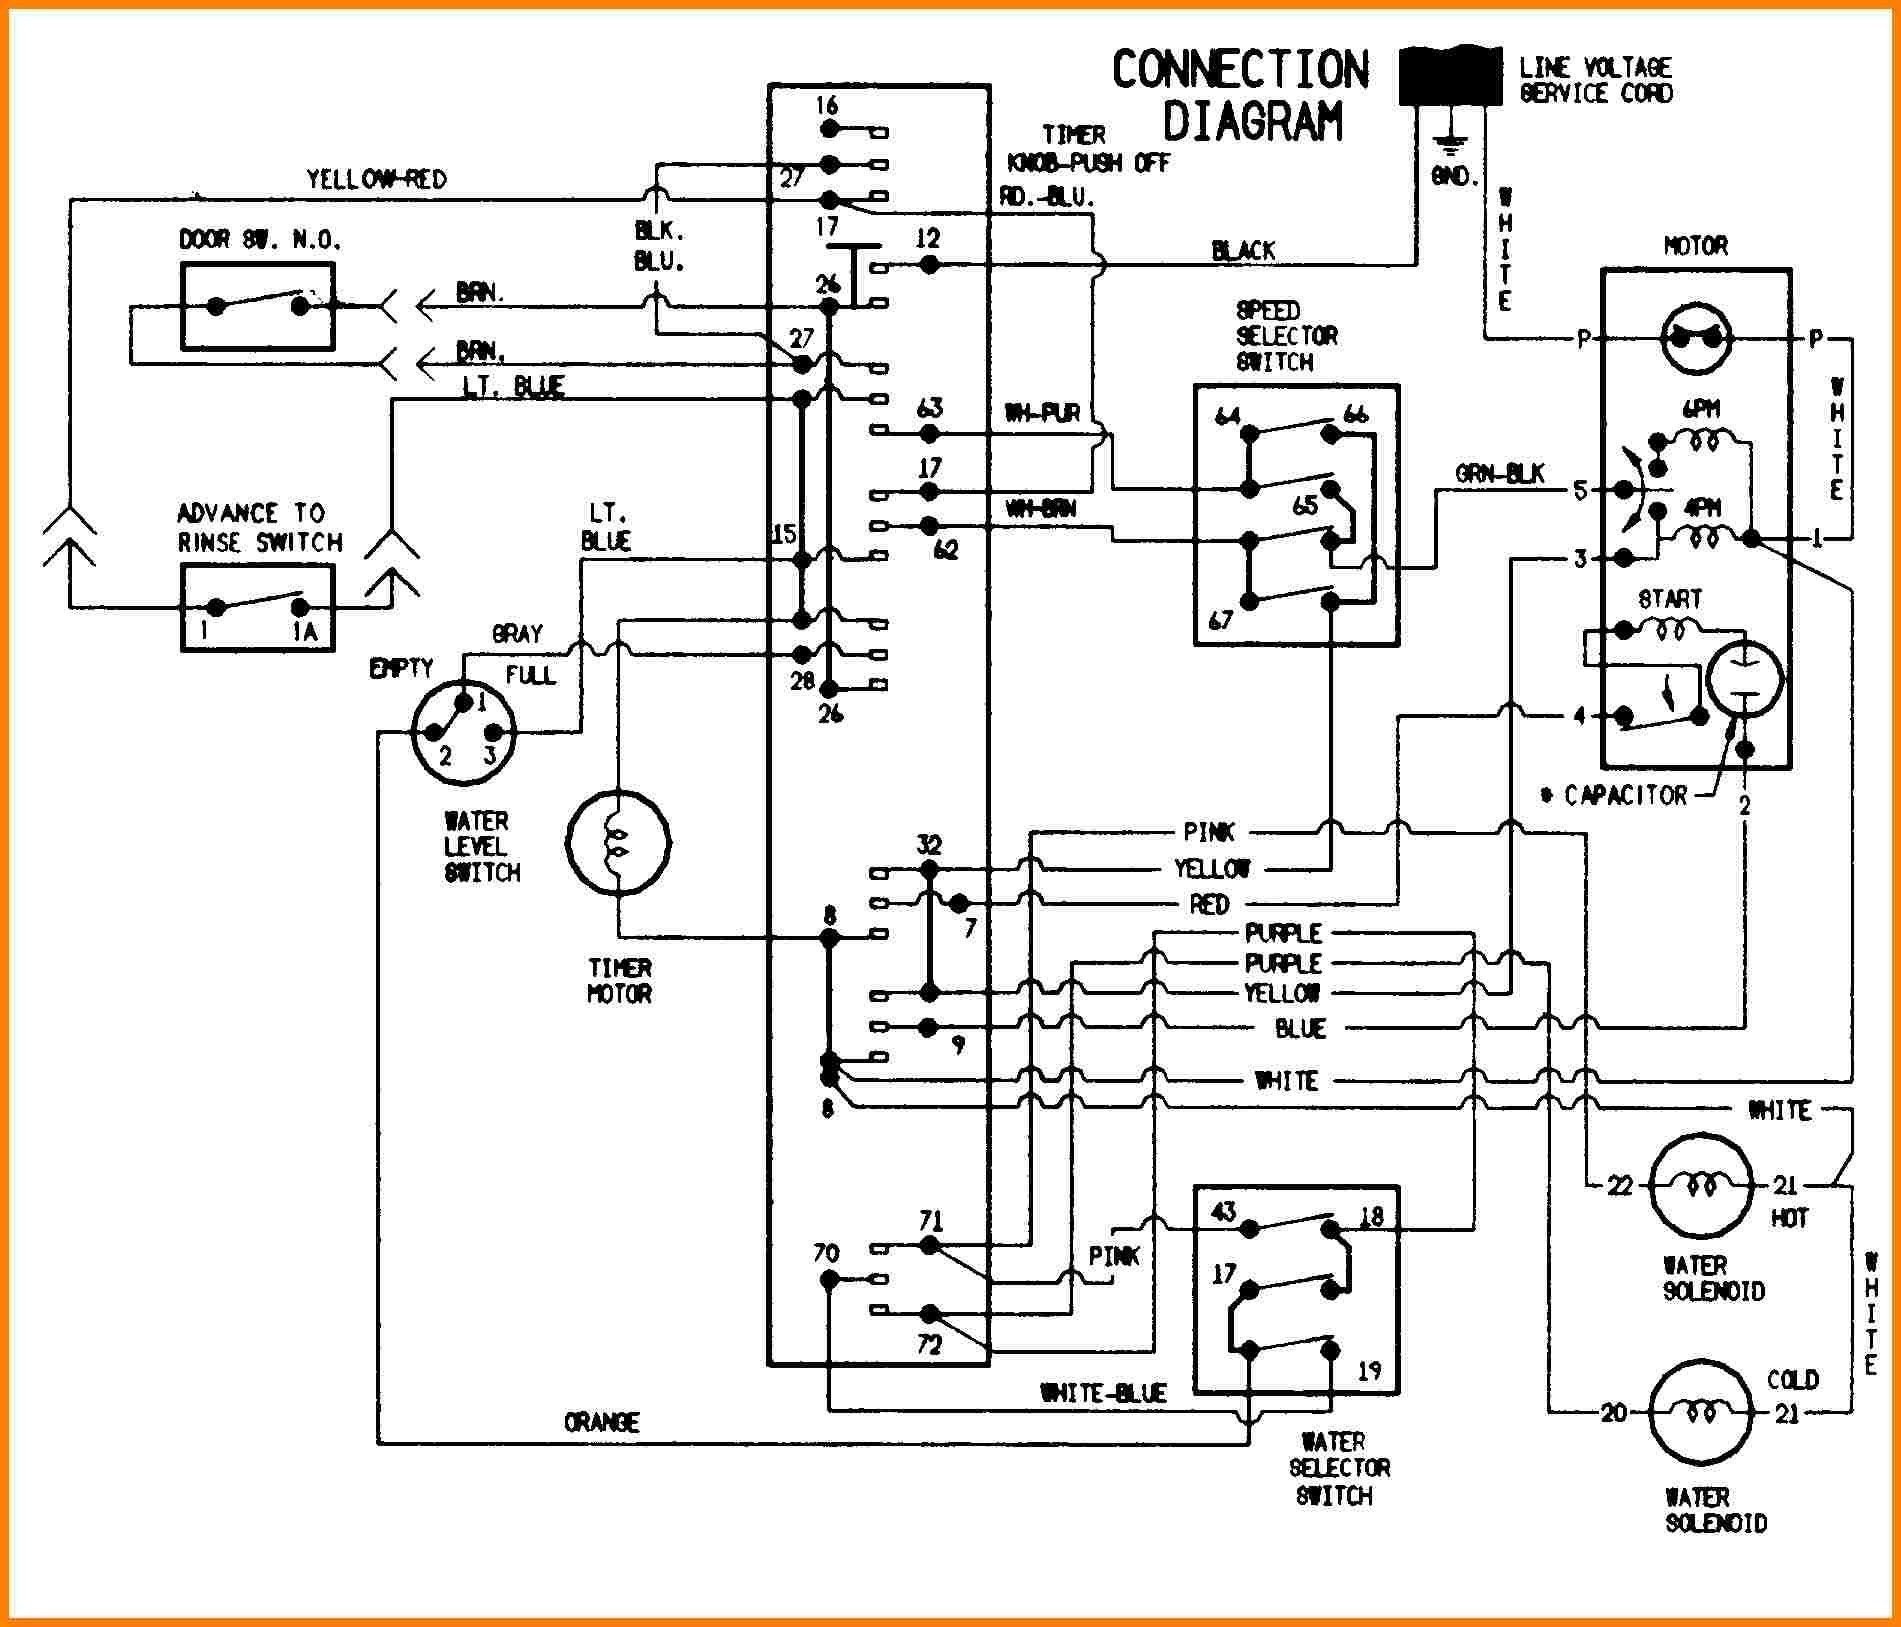 [DIAGRAM] Fog Machine Wiring Diagram FULL Version HD